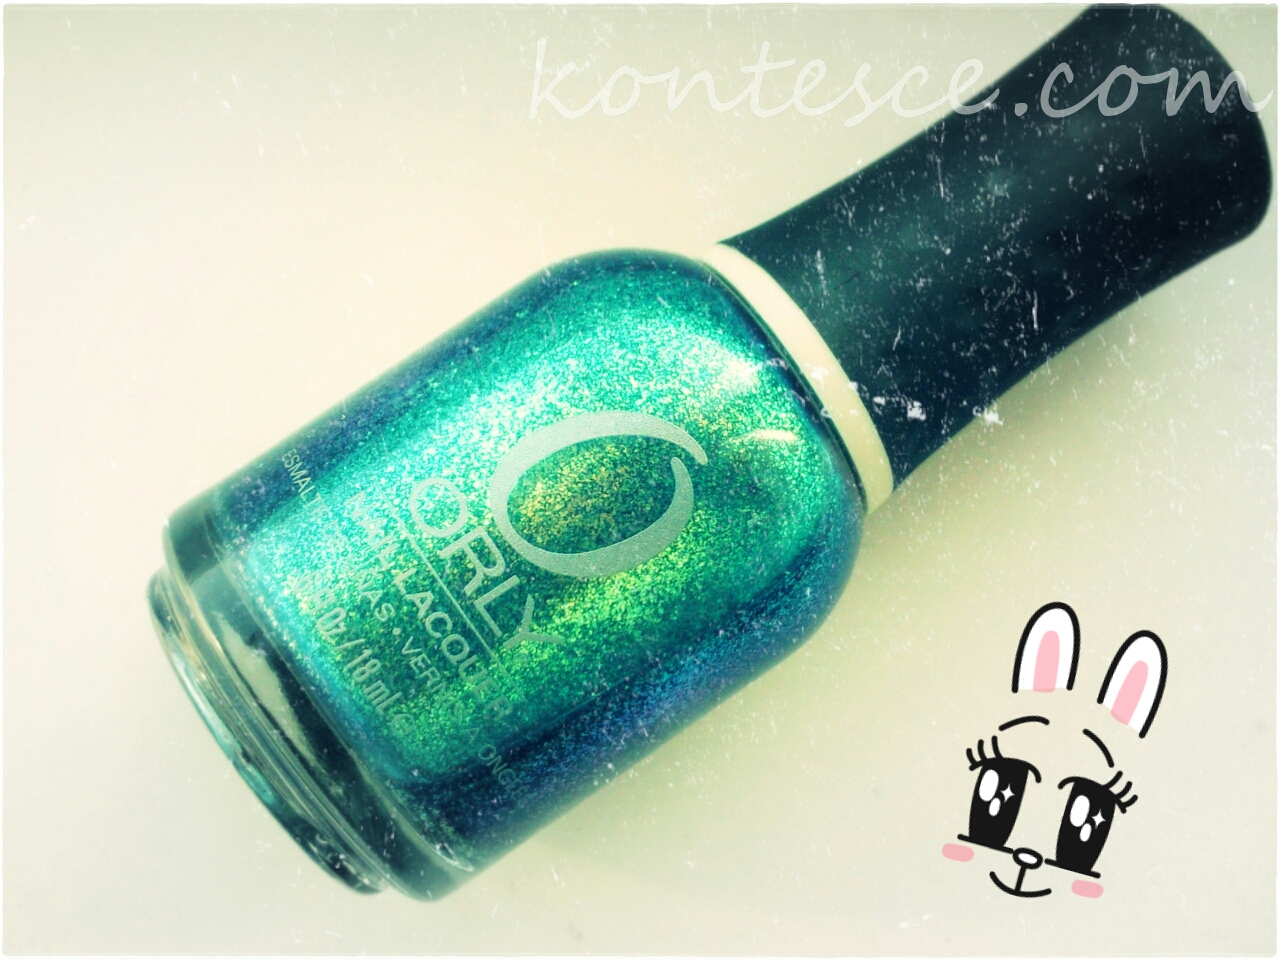 Orly Halley S Comet Kontesce